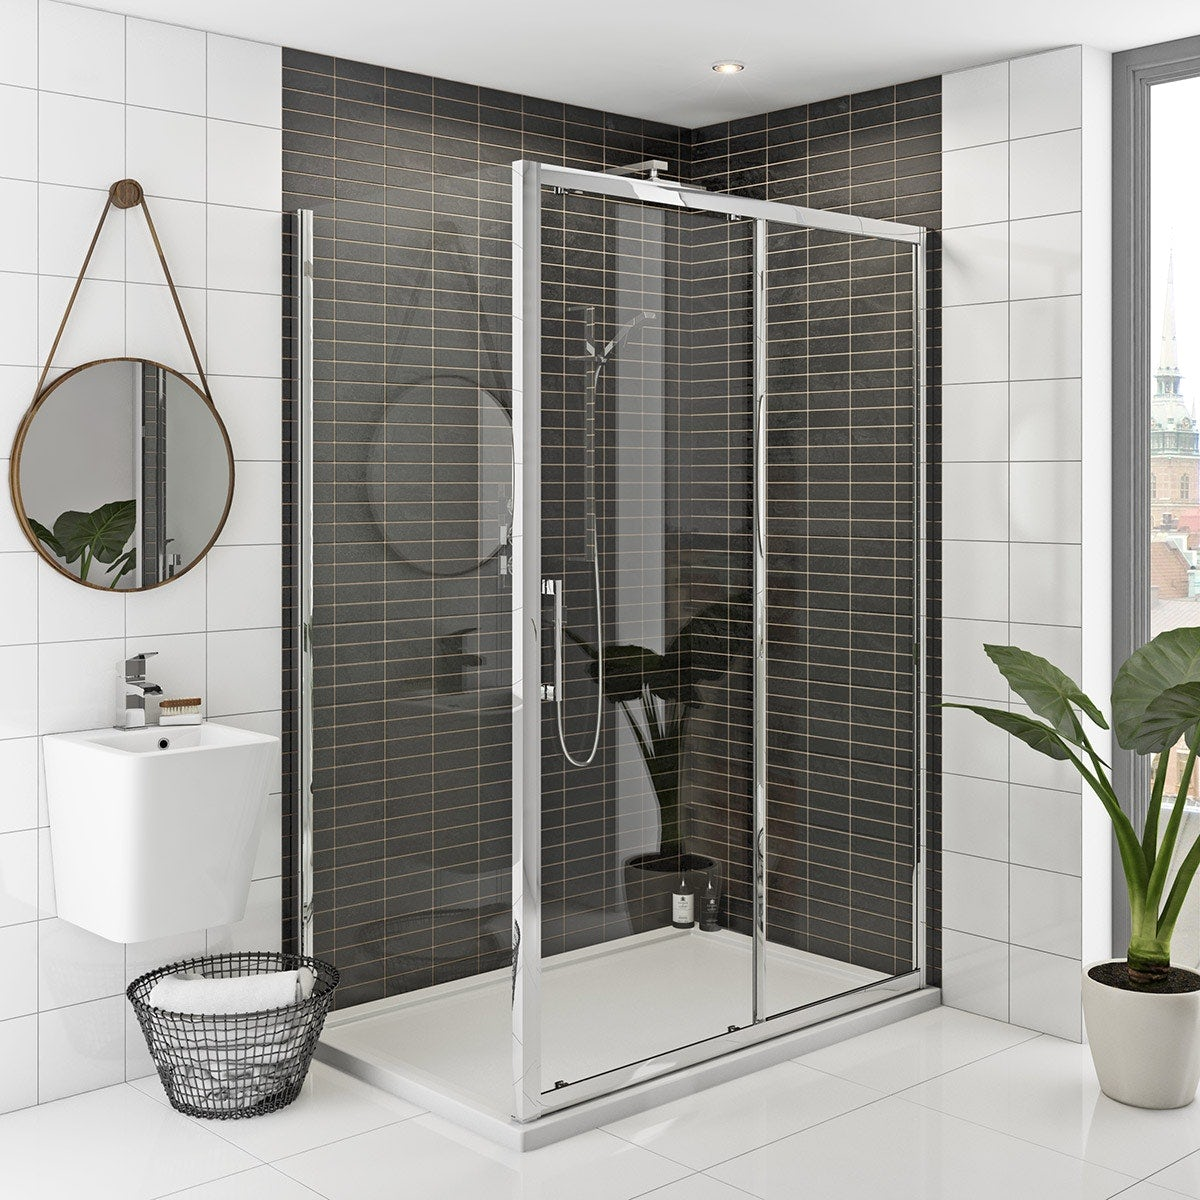 Mode Hardy 8mm complete shower enclosure pack